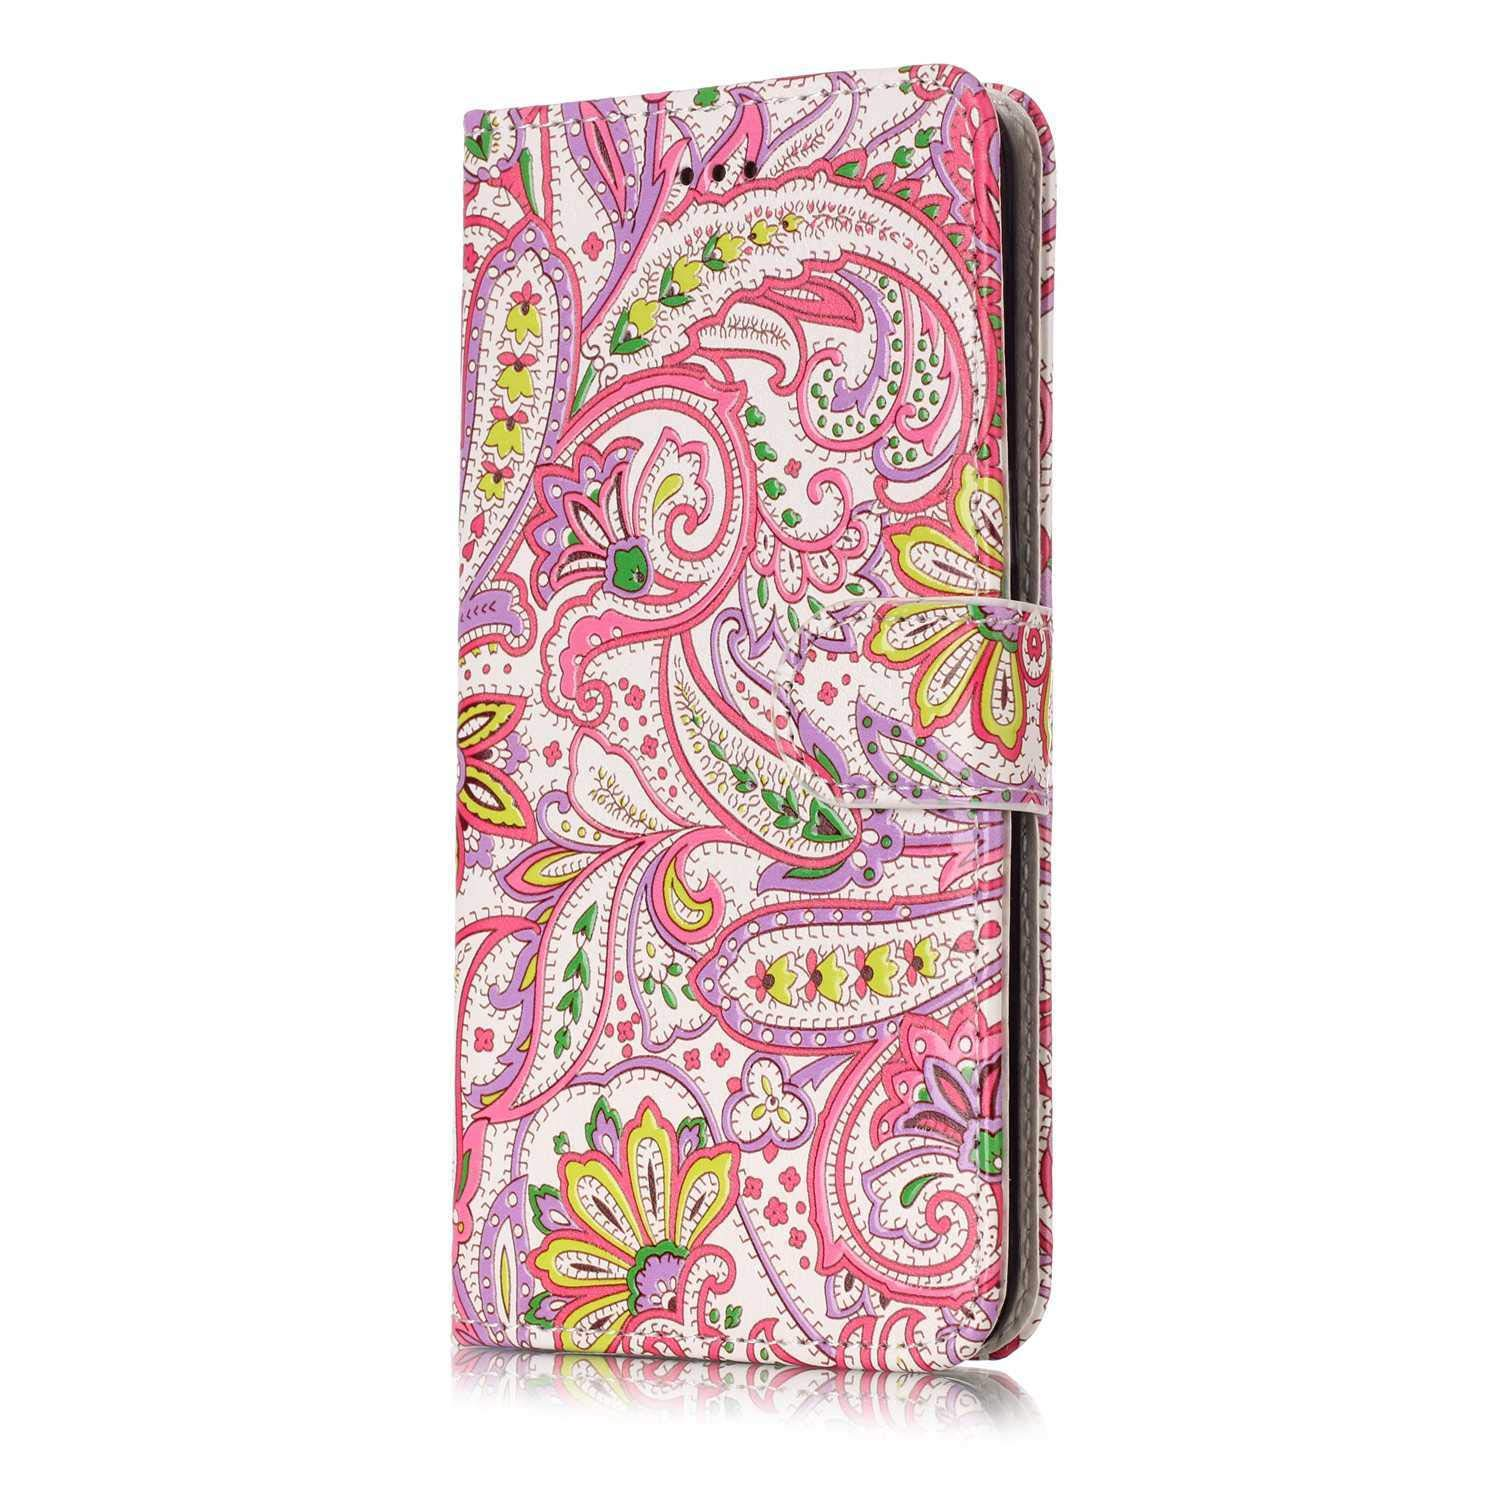 DENDICO Galaxy J2 Plus Case, Wallet Leather Magnetic Flip Case Notebook Style Holster with Card Holder for Samsung Galaxy J2 Plus - Pink